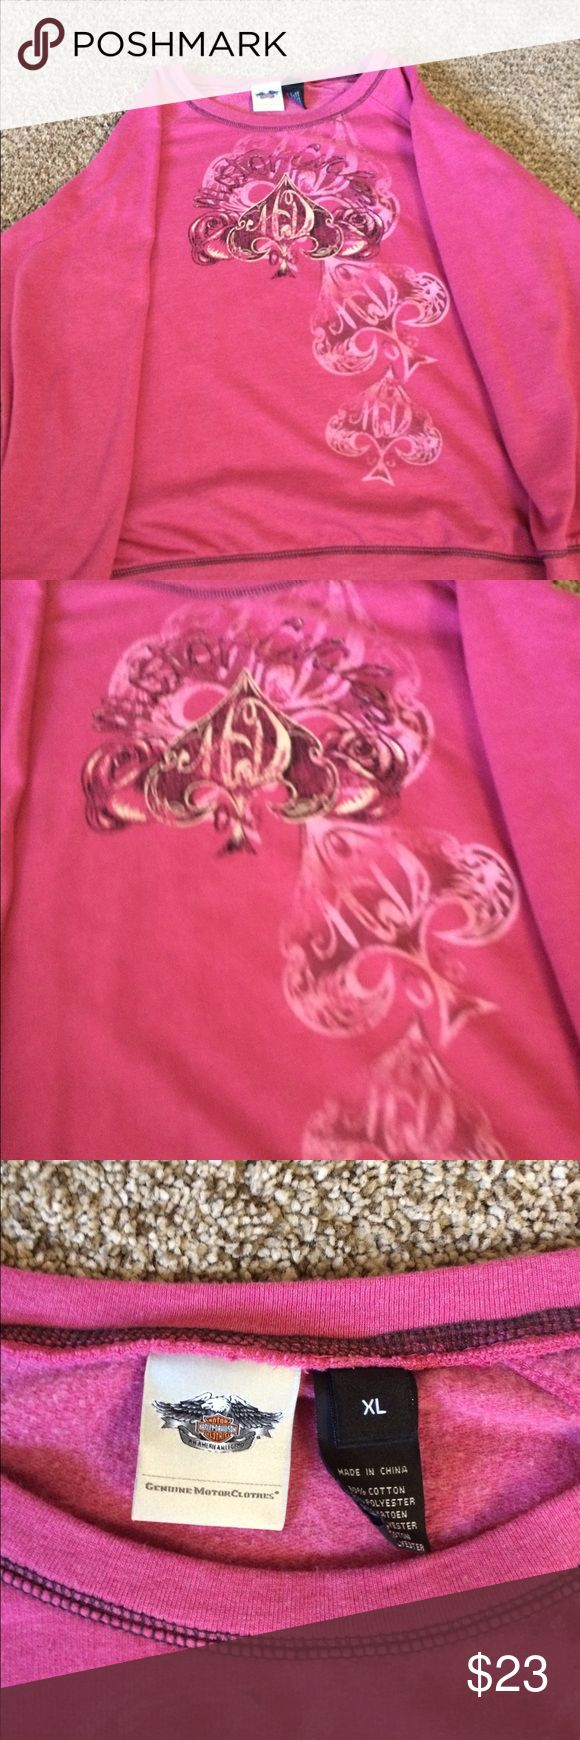 """Authentic Harley Davidson Sweatshirt Authentic Harley Davidson Sweatshirt Size """"XL"""" More Like a """"L"""" In Excellent Condition Pretty Pink Color With Harley Design on Front Nothing on Back Harley-Davidson Tops Sweatshirts & Hoodies"""